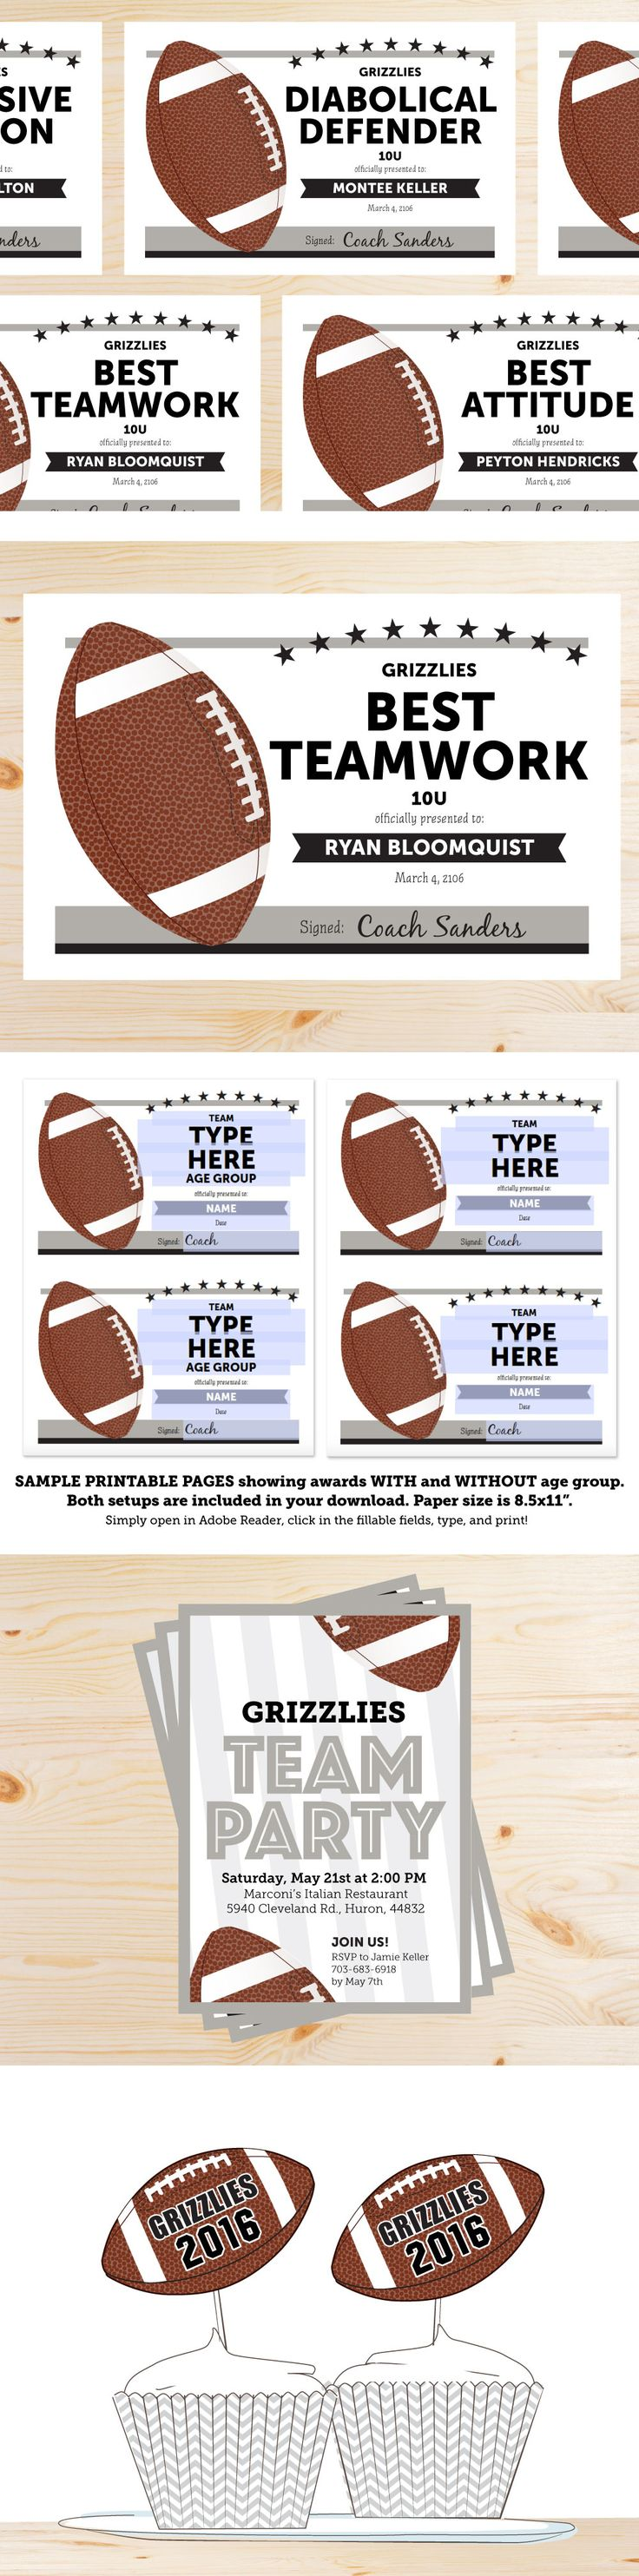 Football Team Party Award Certificates, Invitations, and Cupcake Toppers. Awesome! Also a list of award suggestions.